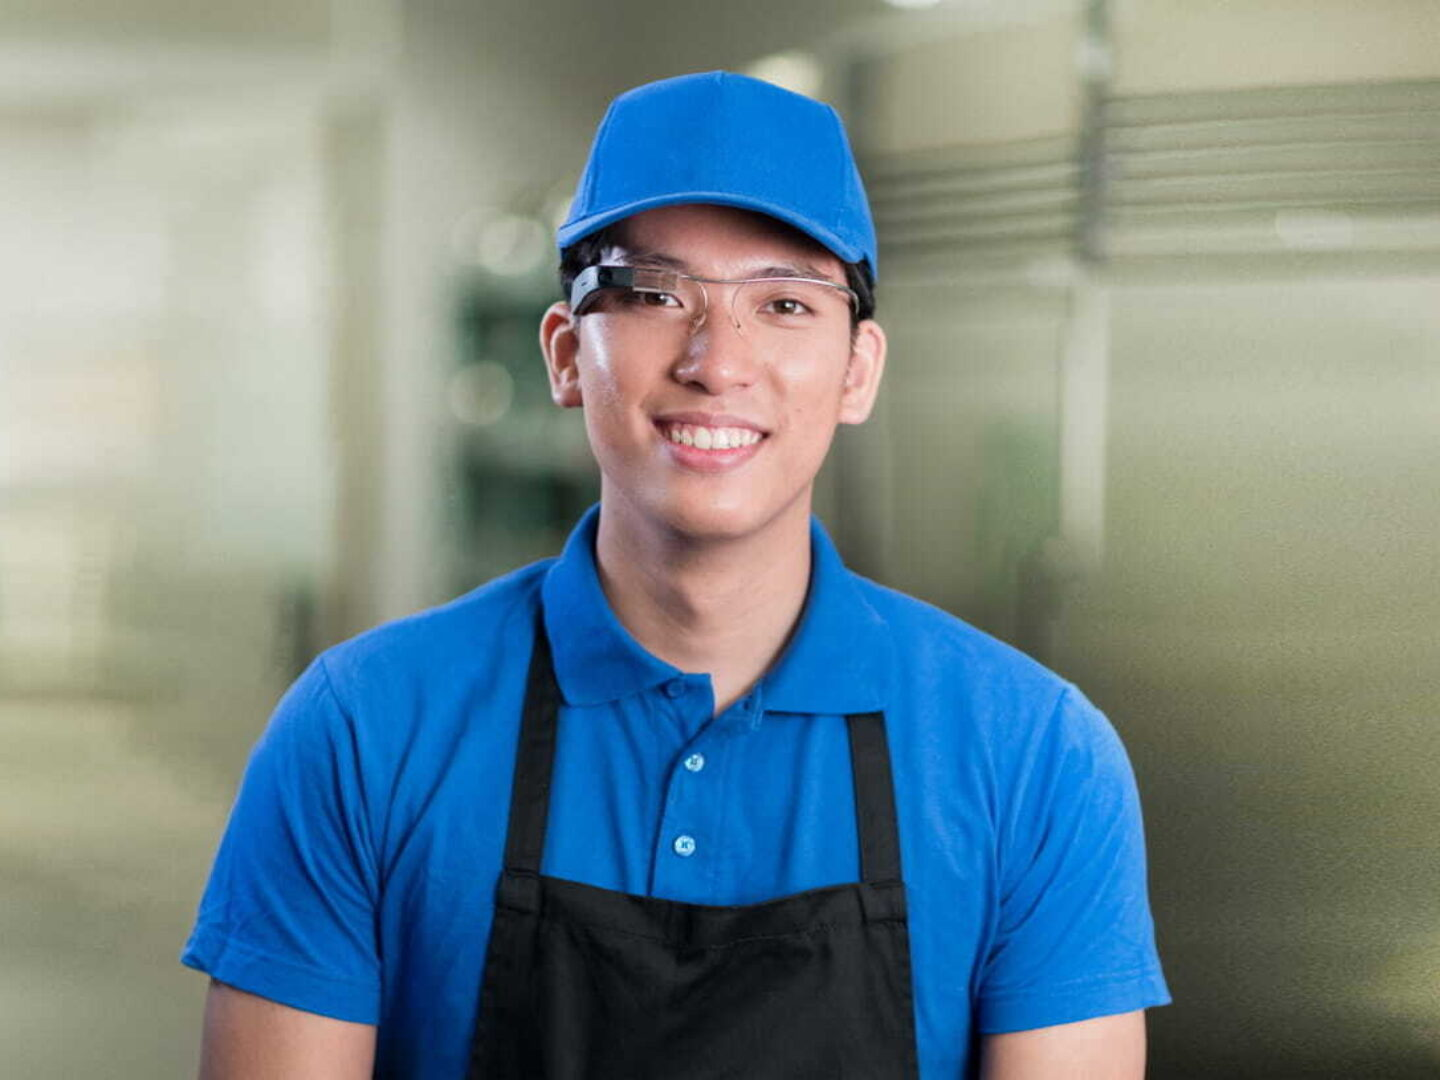 Man in restaurant wearing smartglass - Augmented Reality Training and Remote Assistance | NSF International